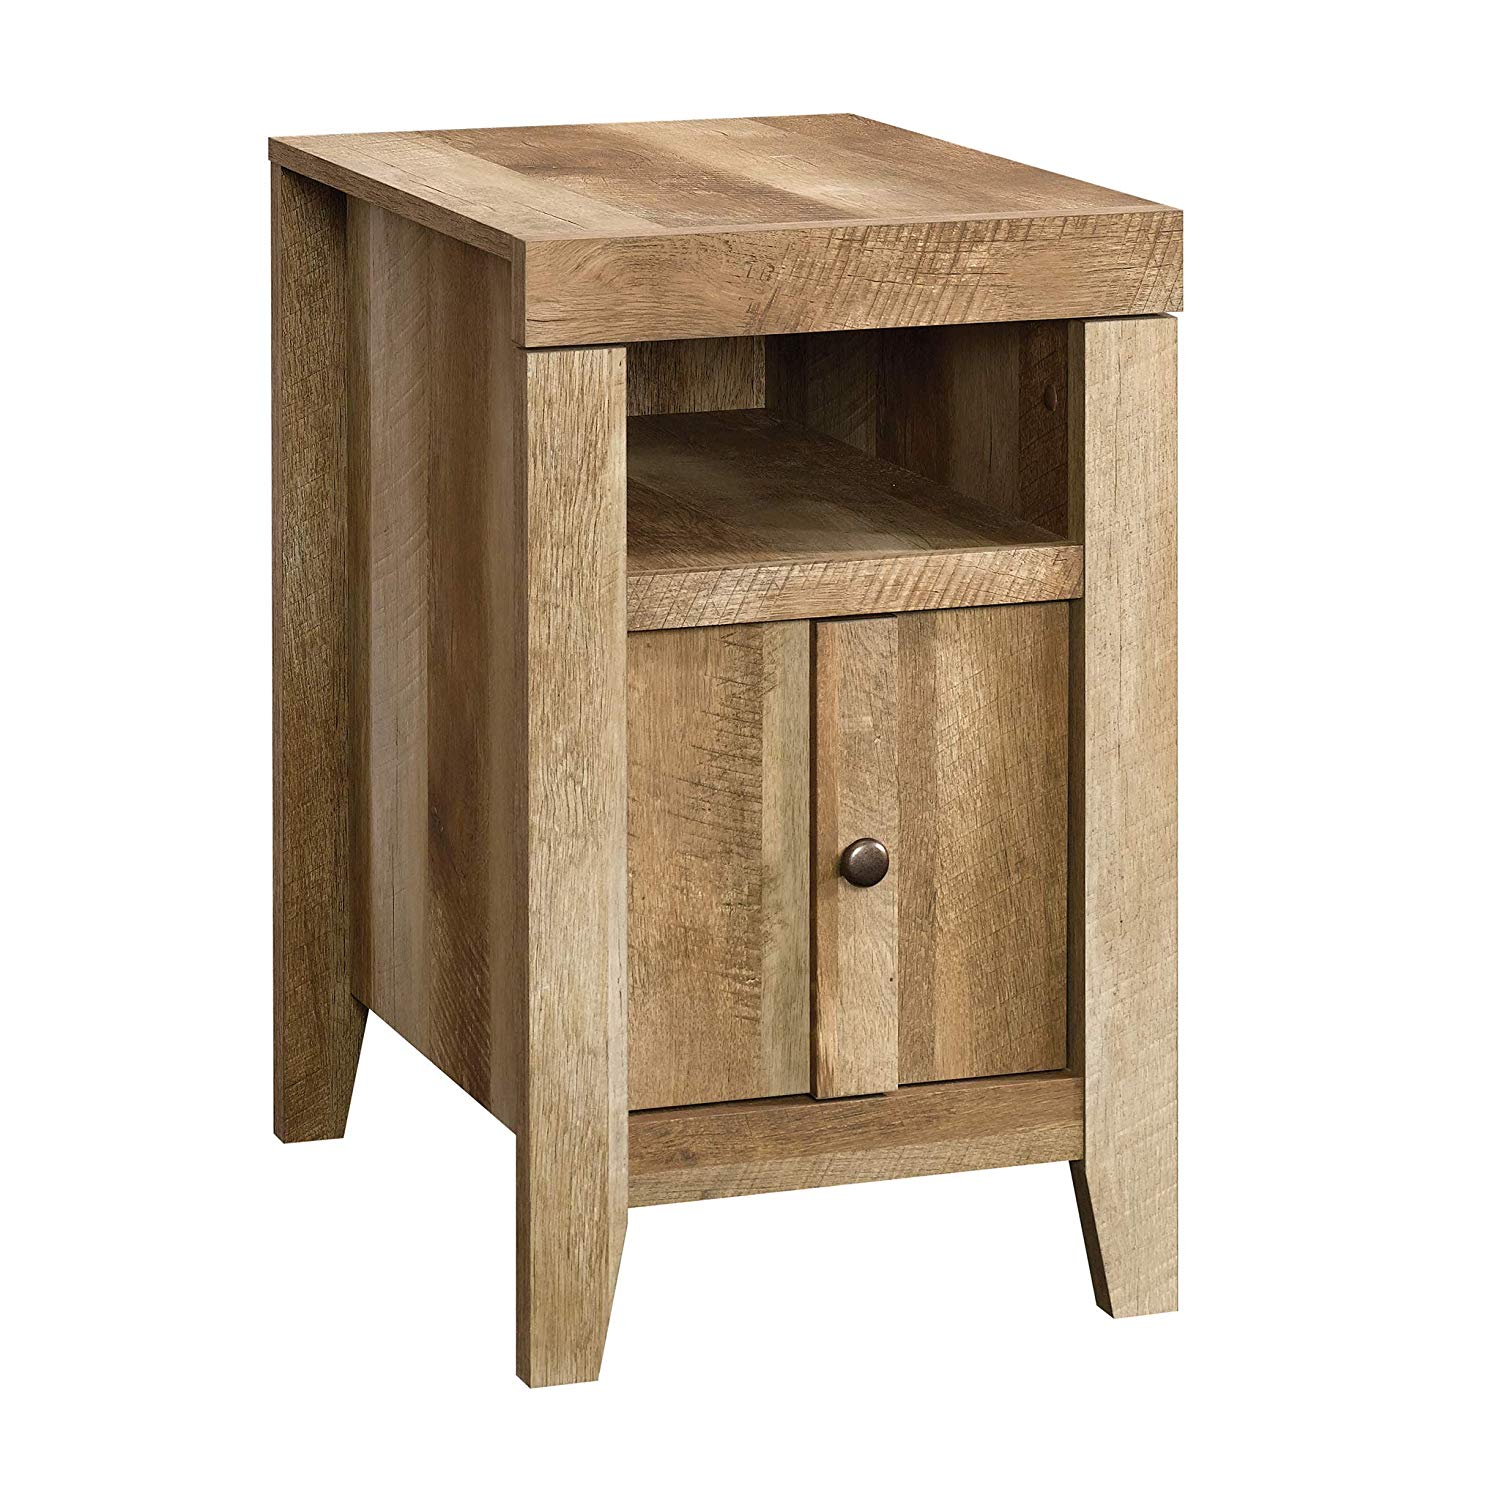 sauder dakota pass side table wml furniture end tables craftsman oak finish kitchen dining brown wicker outdoor unfinished hardwood baseball distressed white living room high wood